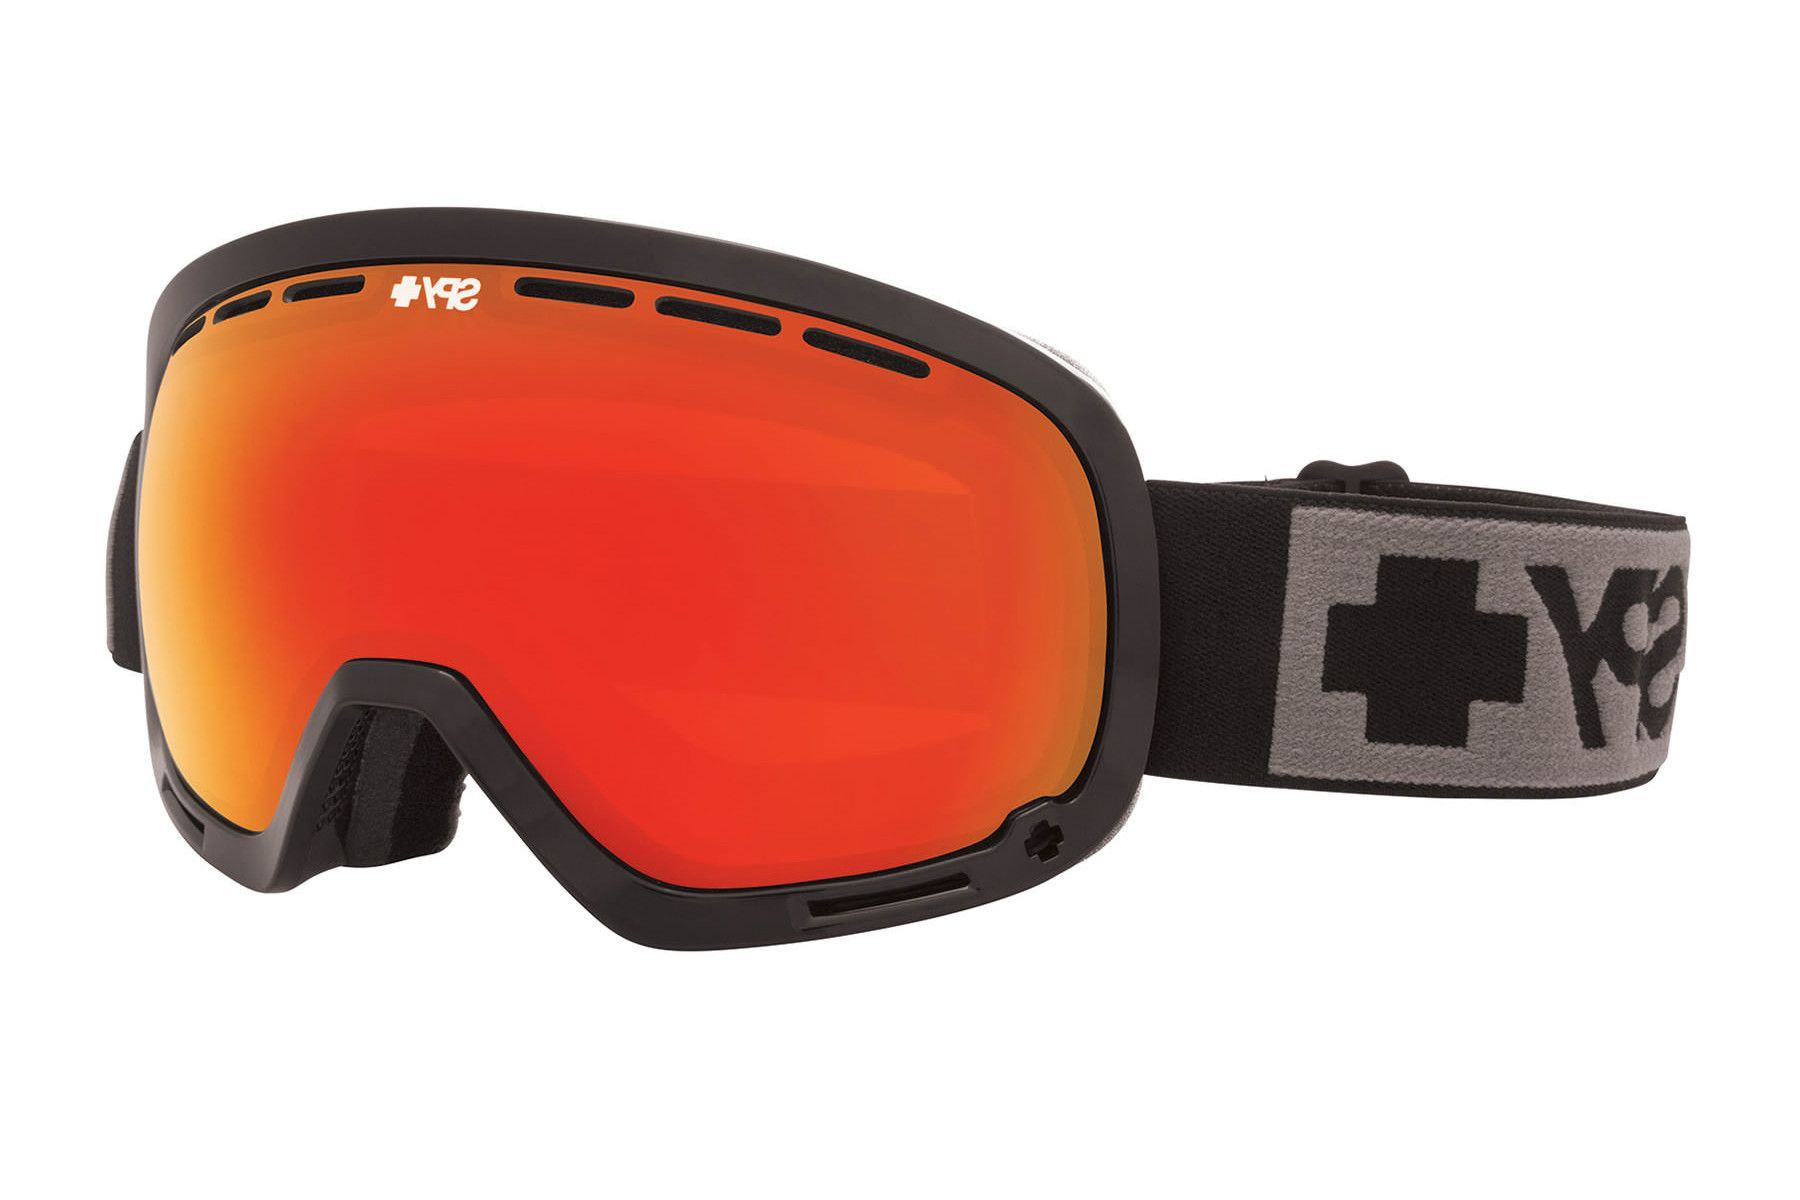 Spy - Marshall Black Goggles, Bronze W/ Red Spectra (+Blue Contact) Lenses